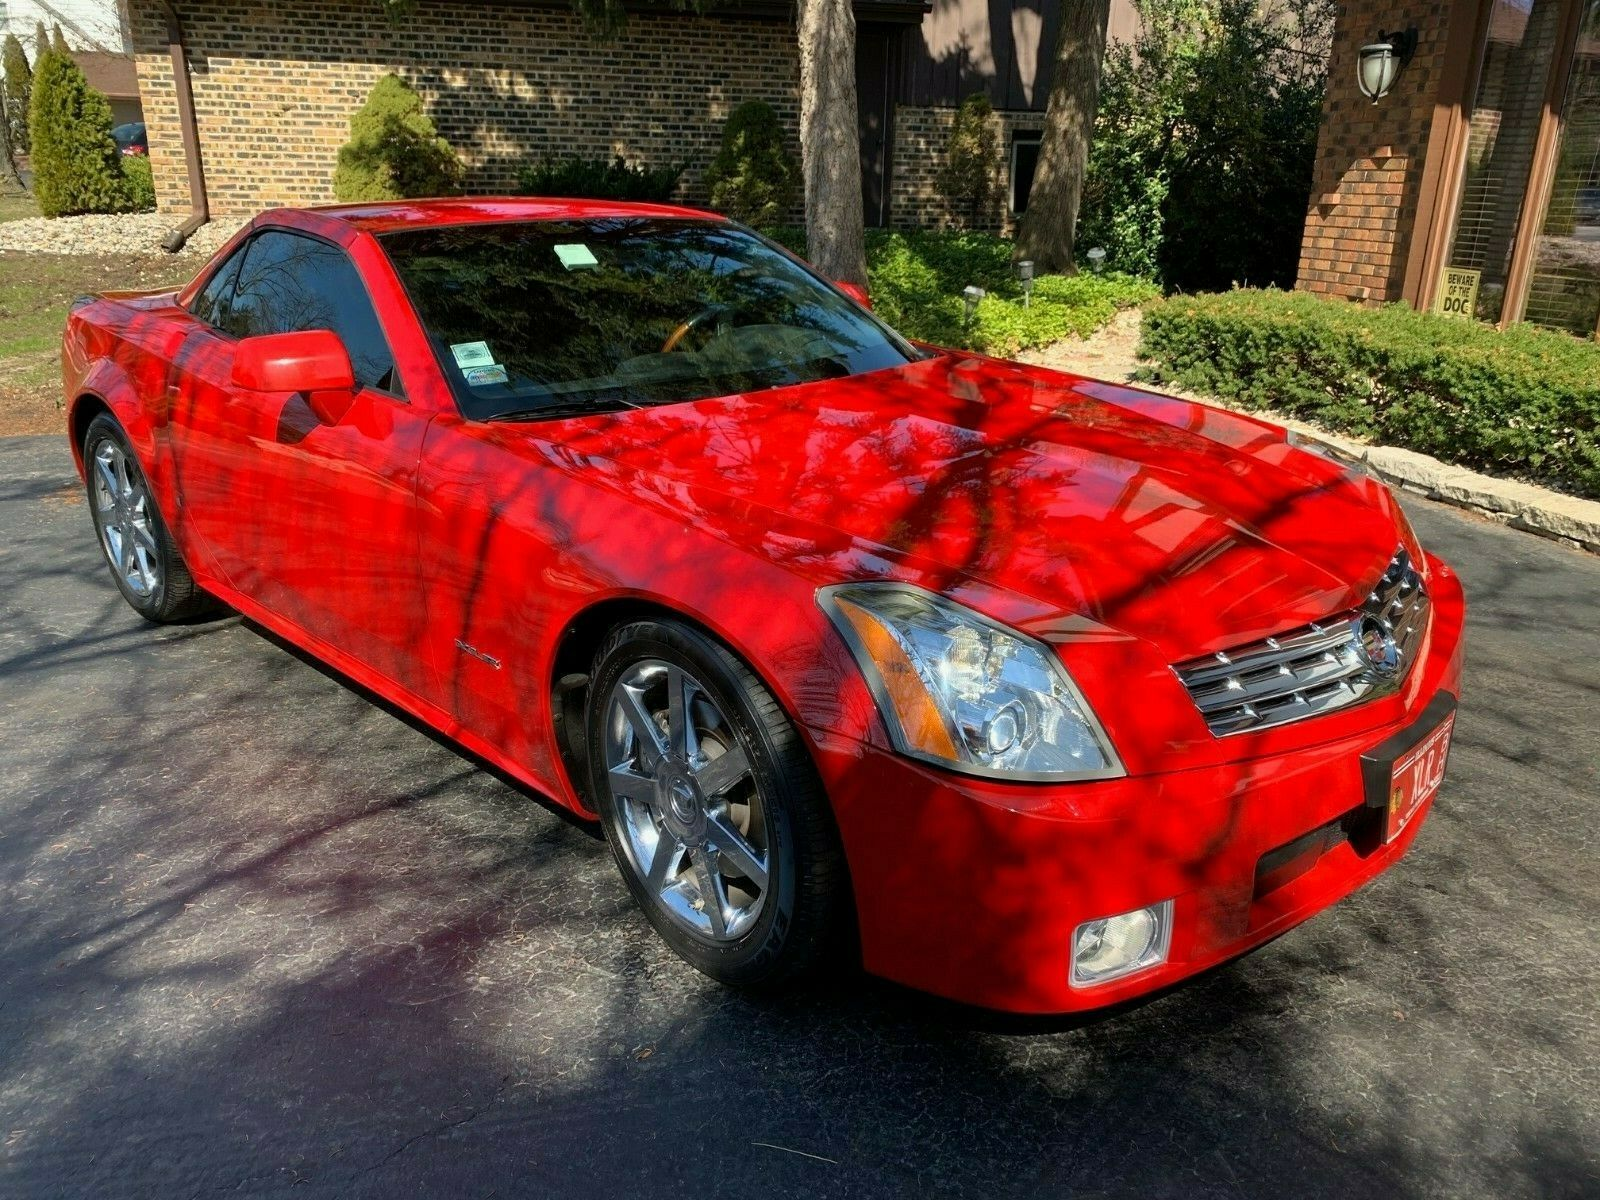 2007 CADILLAC XLR CONVERTIBLE PASSION RED LIMITED EDITION #102/250 38K MILES